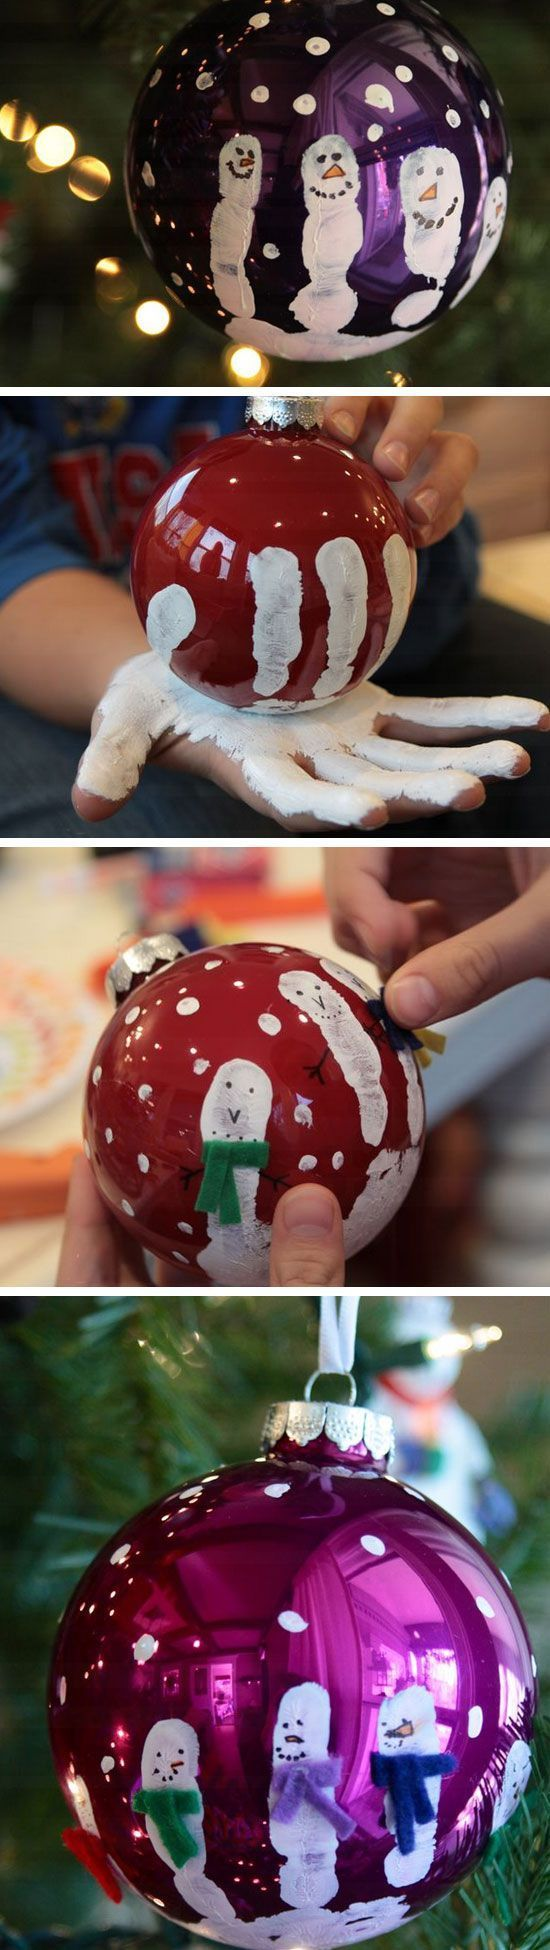 DIY Christmas Crafts for Kids  Easy Craft Projects for Christmas